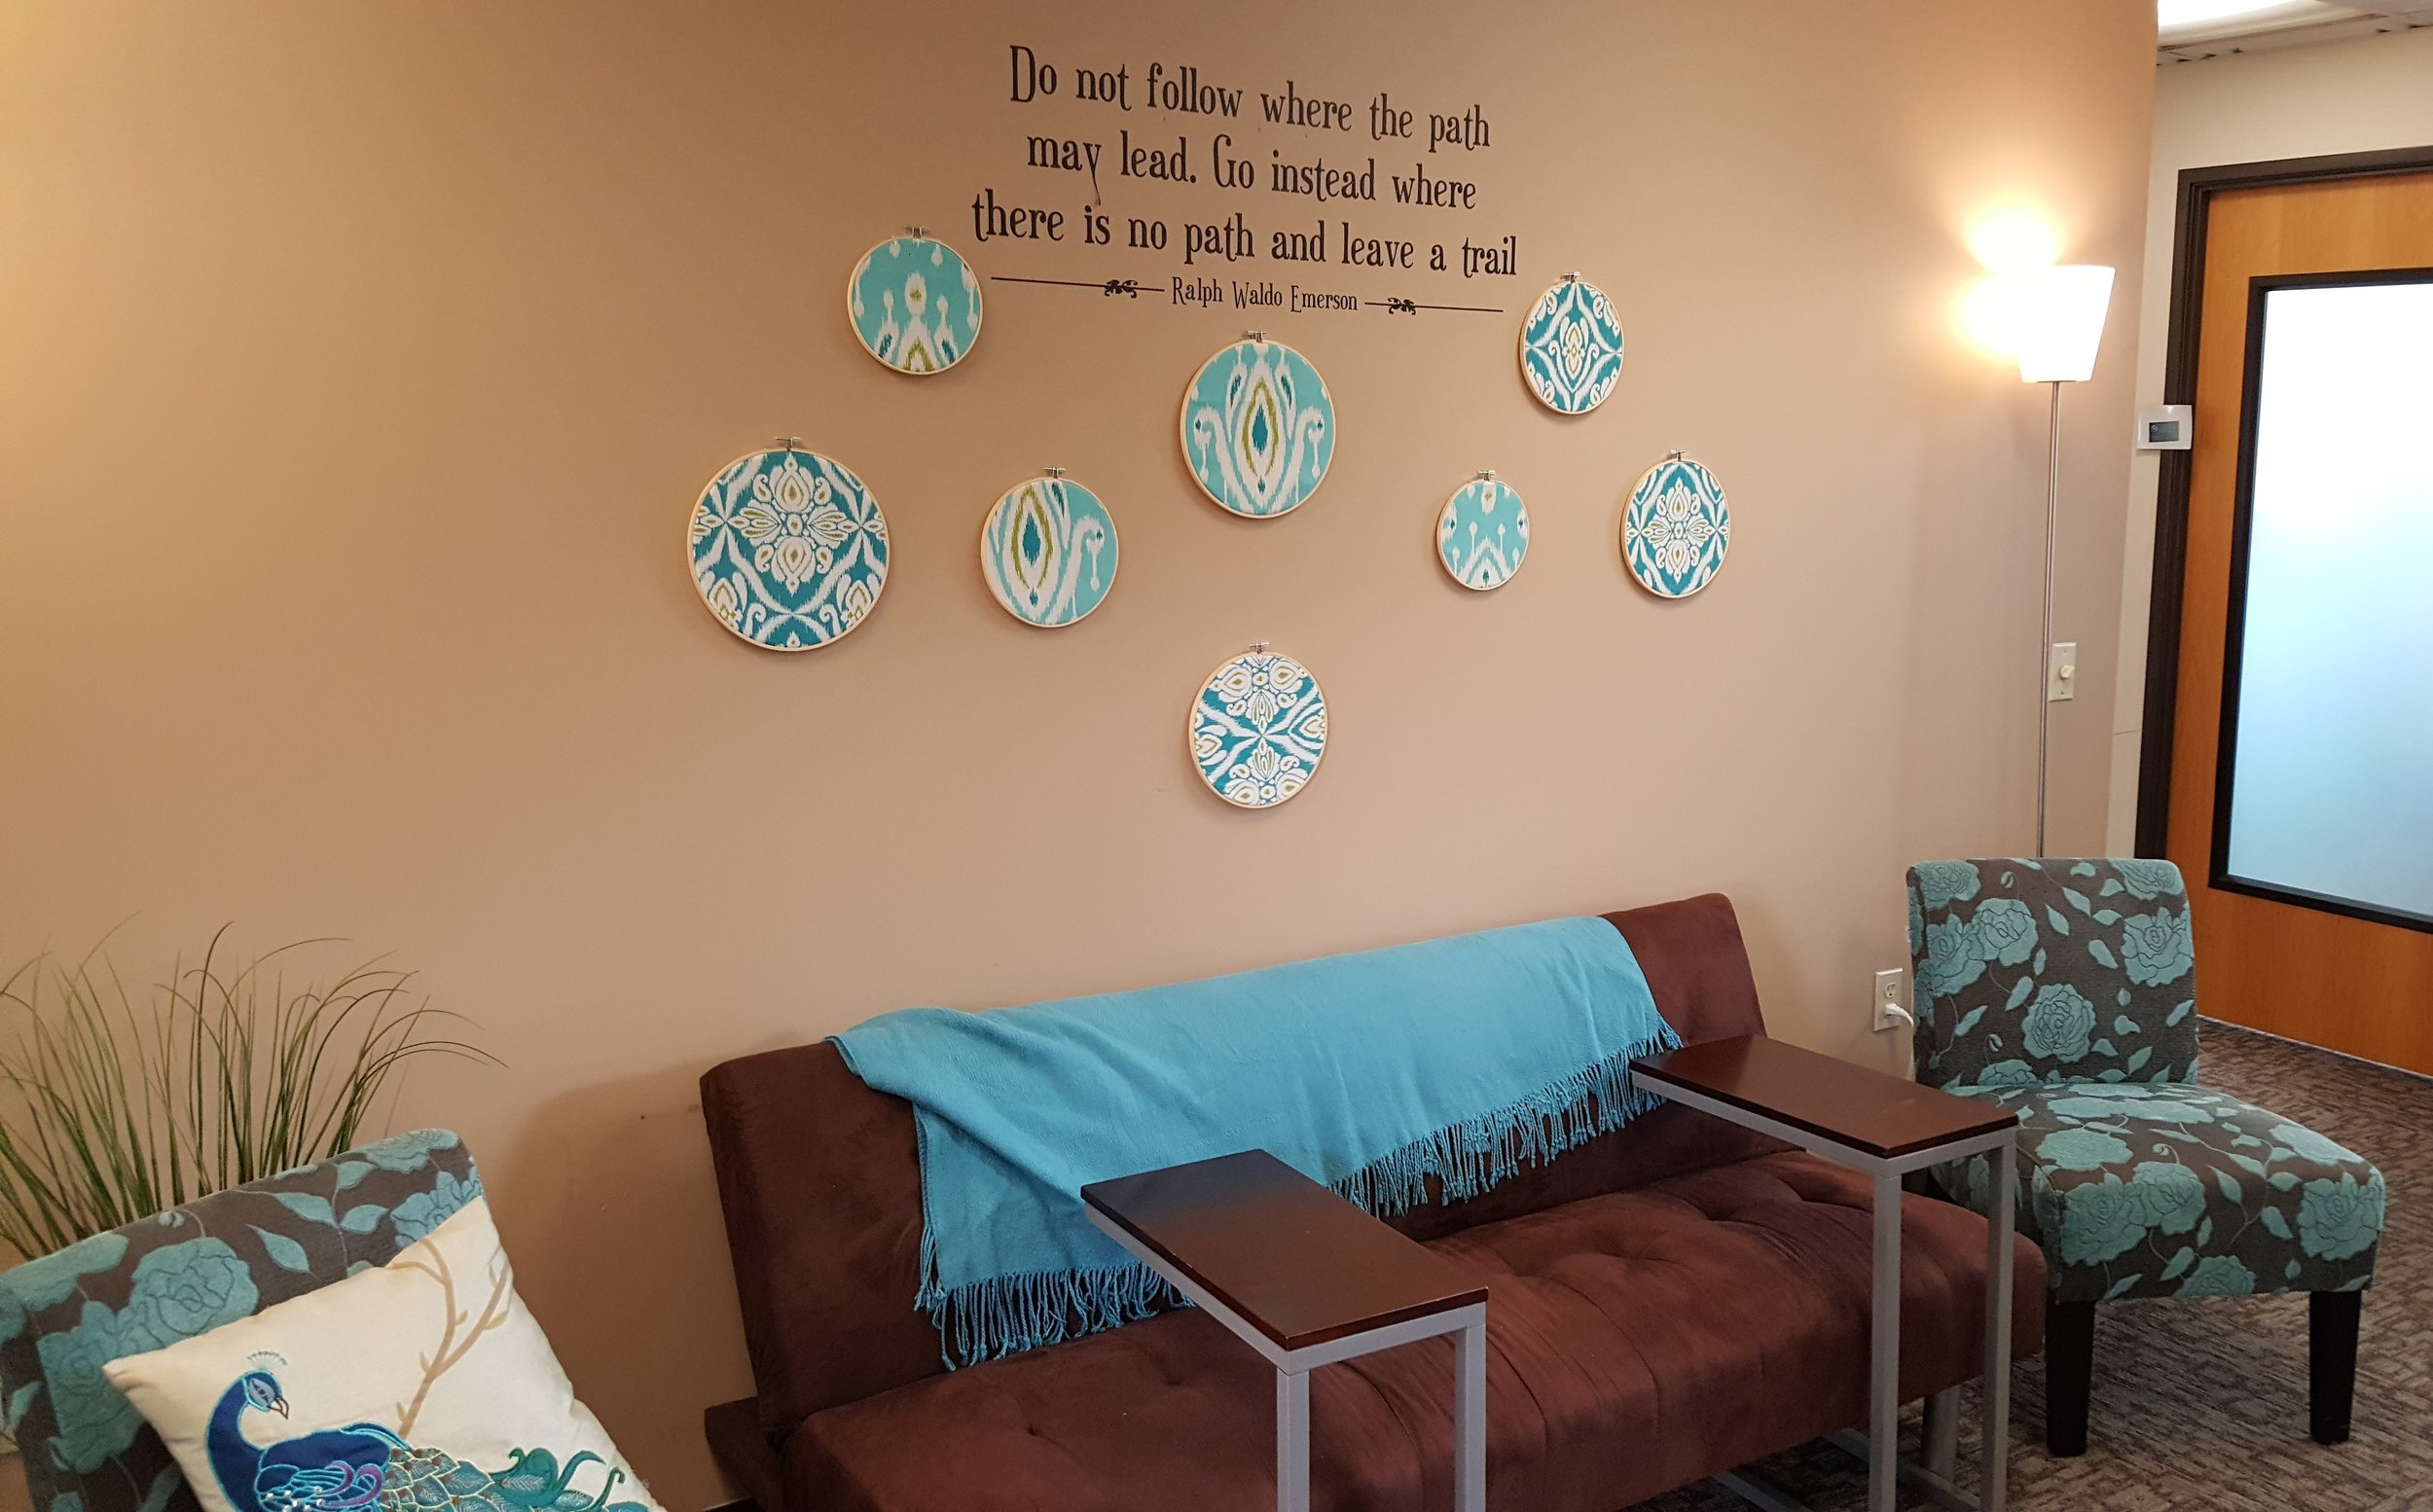 Inspirational quotes and peacock motifs (a symbol of the Hera's Greek Goddess of women, luxury, beauty and immortality, are found throughout the space.